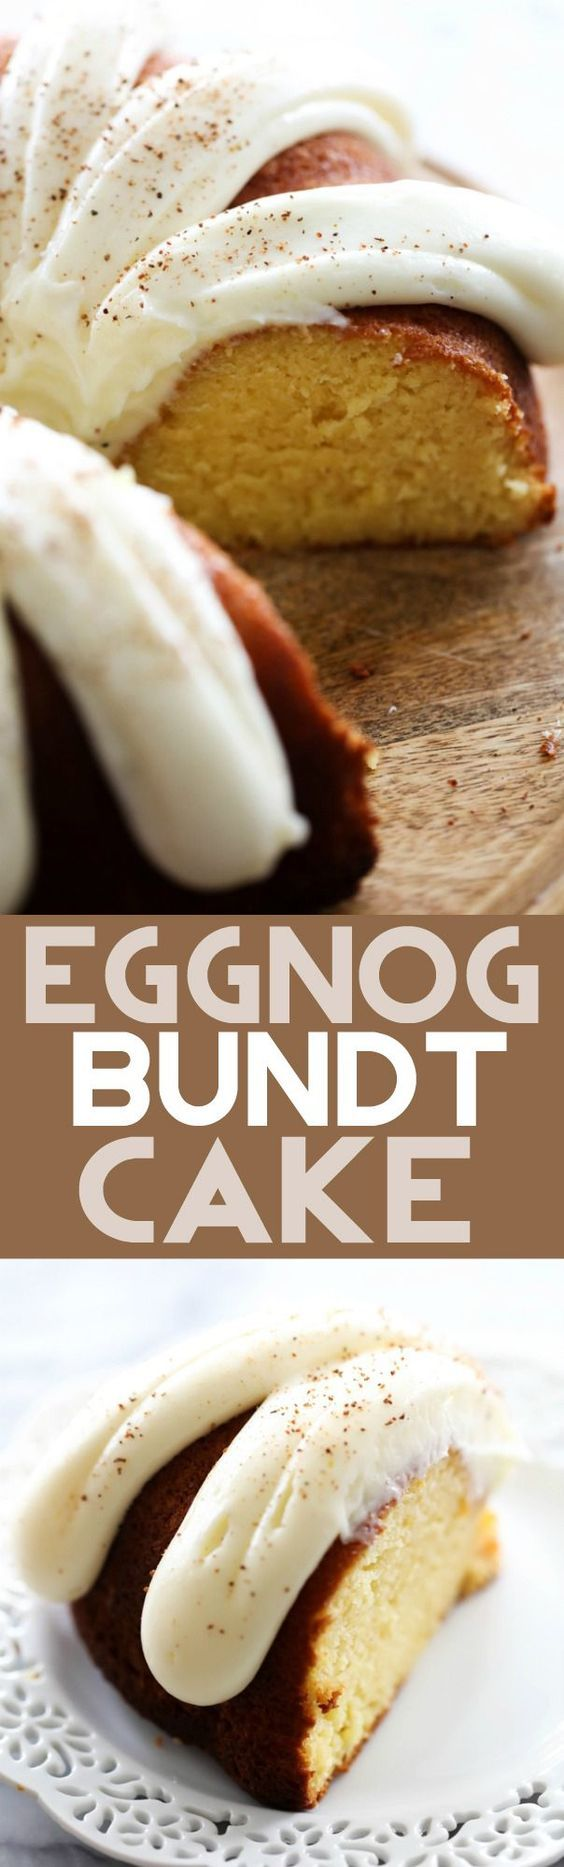 This Eggnog Bundt Cake is perfect for the holidays! This cake is moist and simple. It will be one dessert you want to make over and over again!